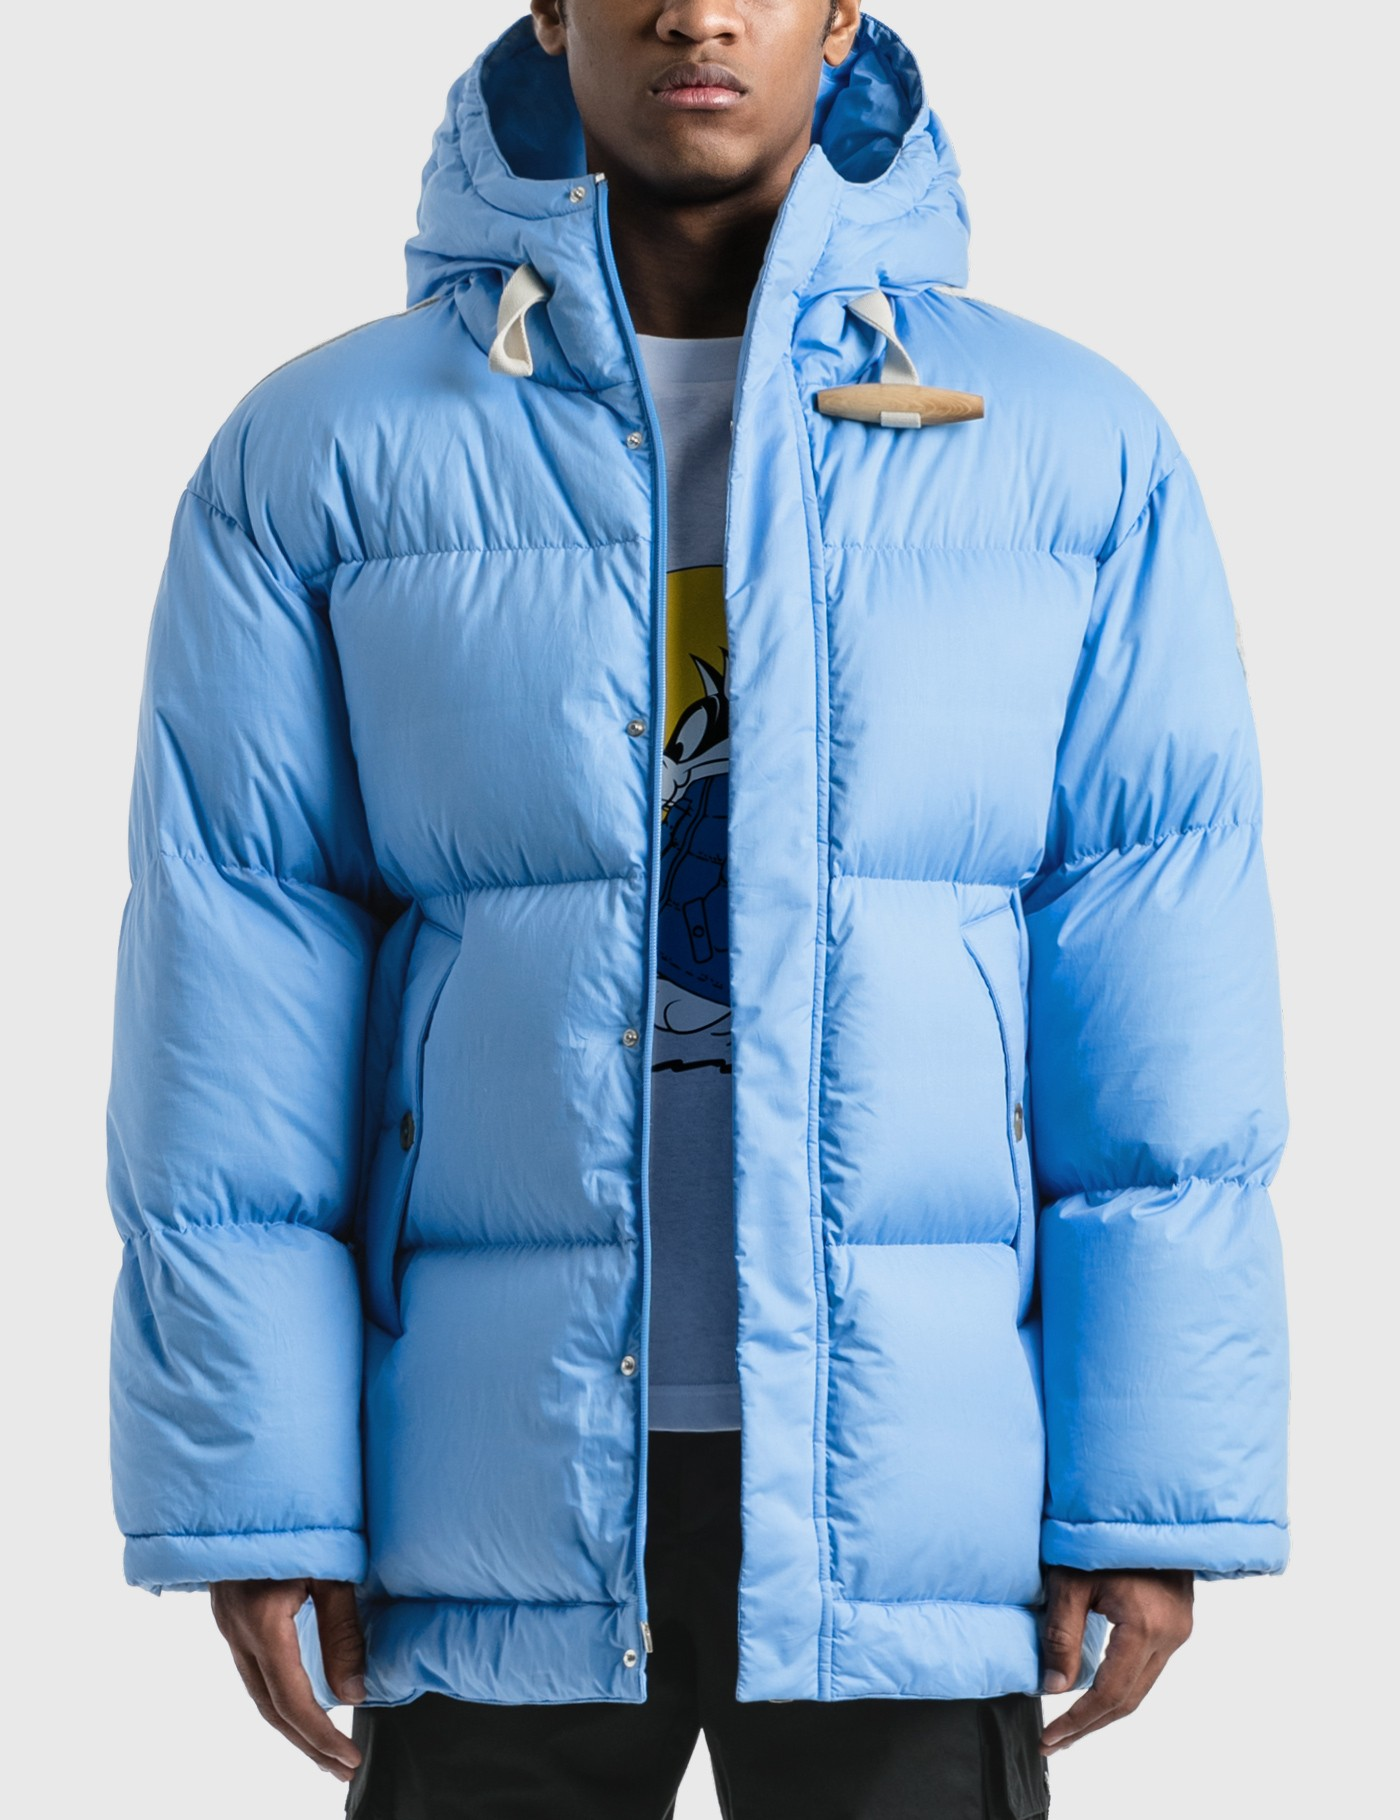 Moncler Genius Downs X JW ANDERSON CONWY JACKET